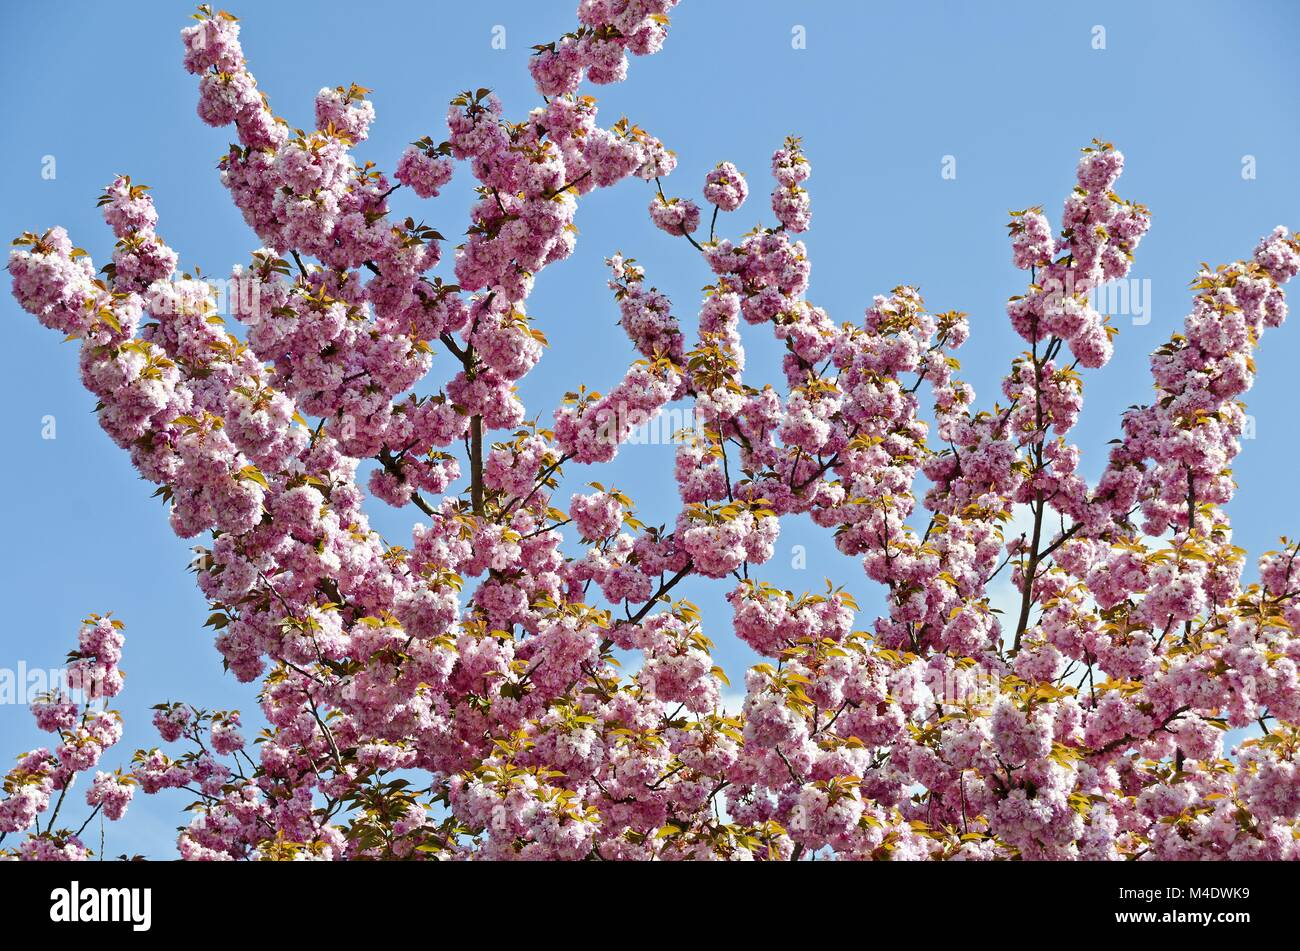 Japanese Almond Tree Stock Photos Japanese Almond Tree Stock